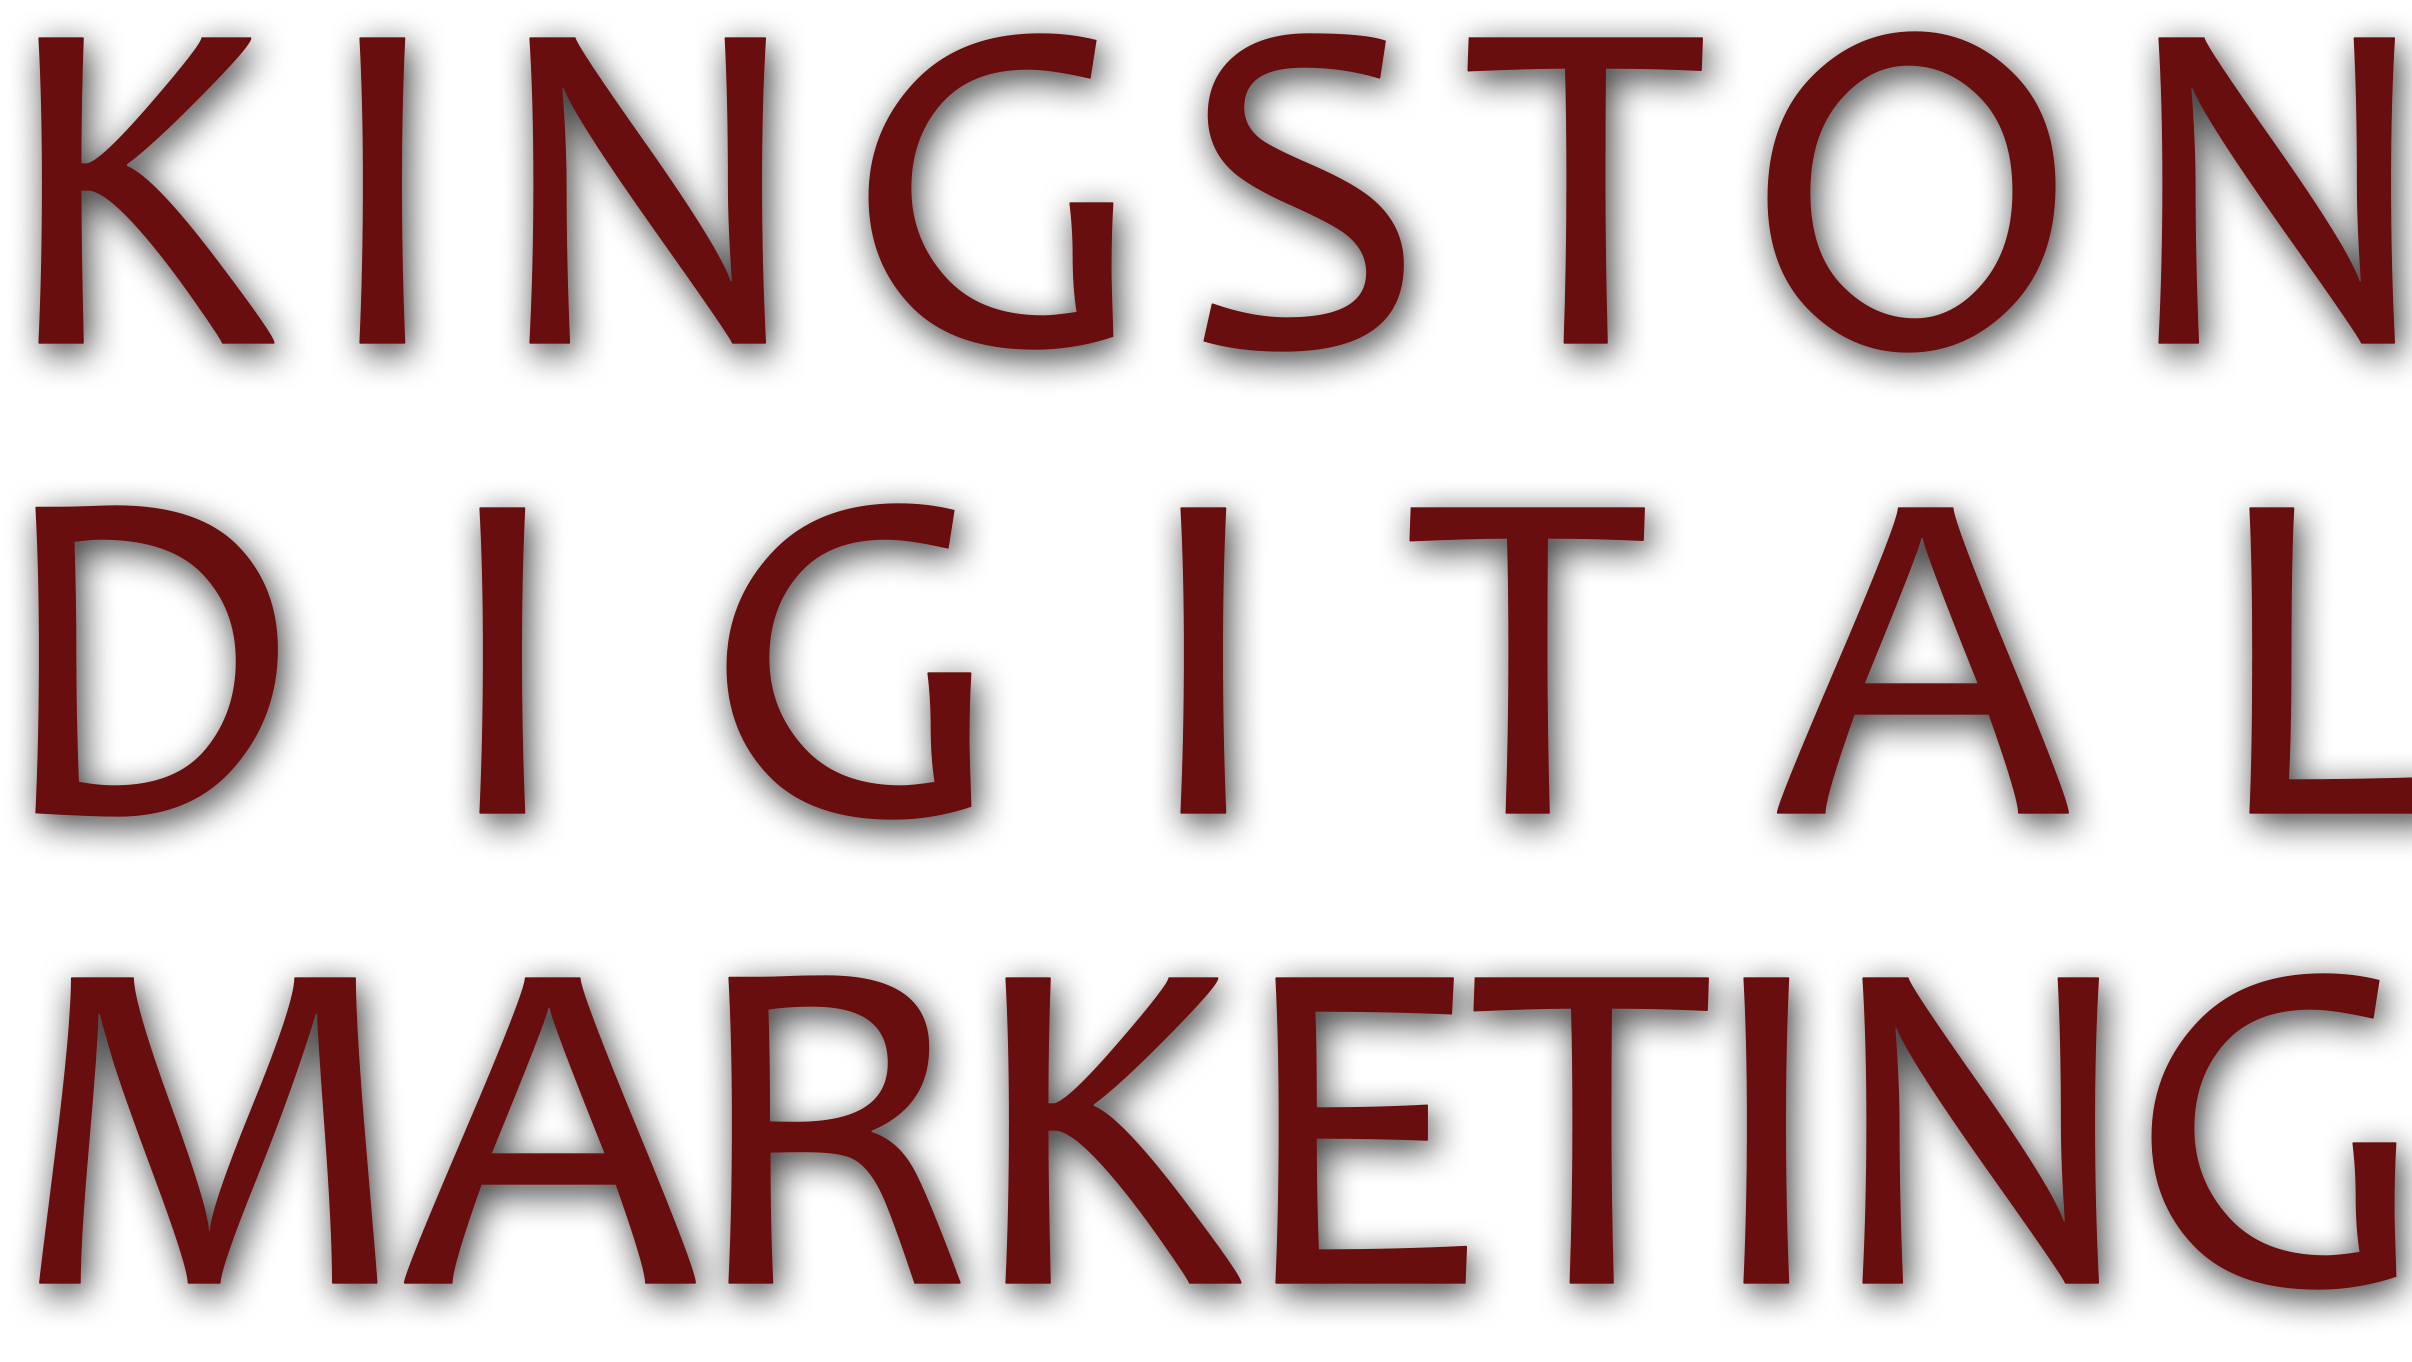 Kingston Digital Marketing